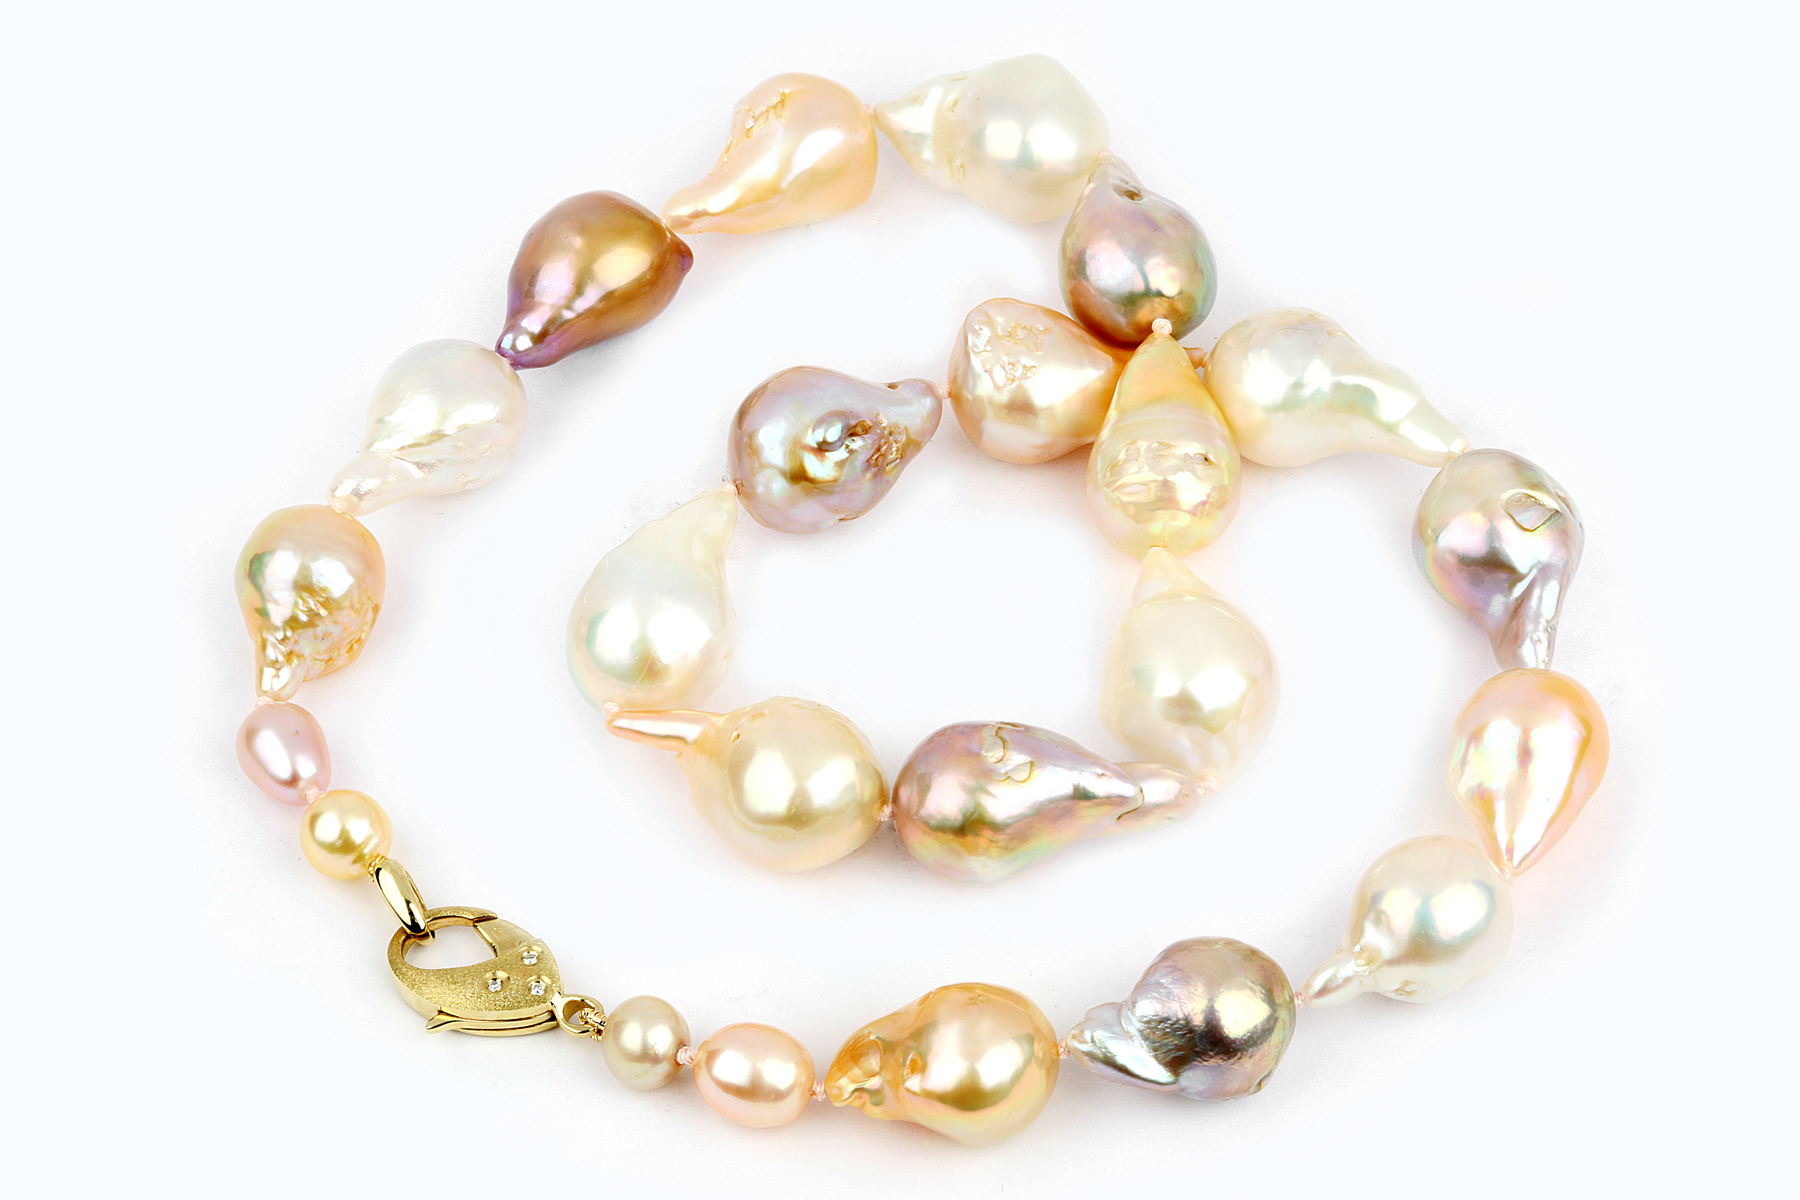 co designer product jewellery pearl colored web pastel pearls necklace neckl used